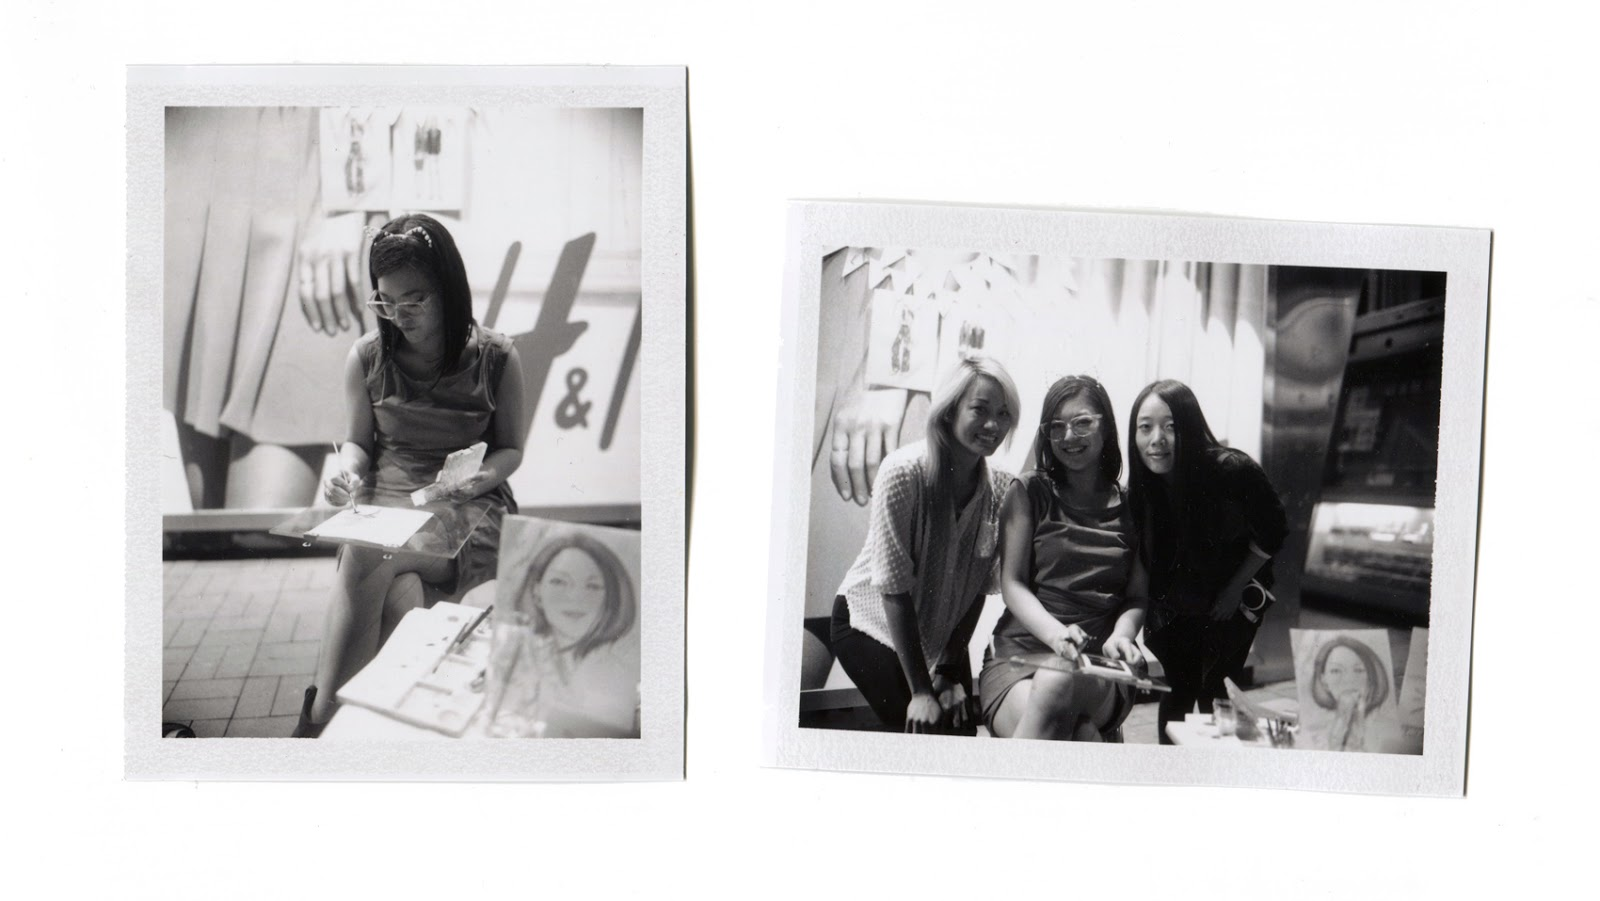 Kitty N. Wong / Live Draw Tsim Sha Tsui Polaroids